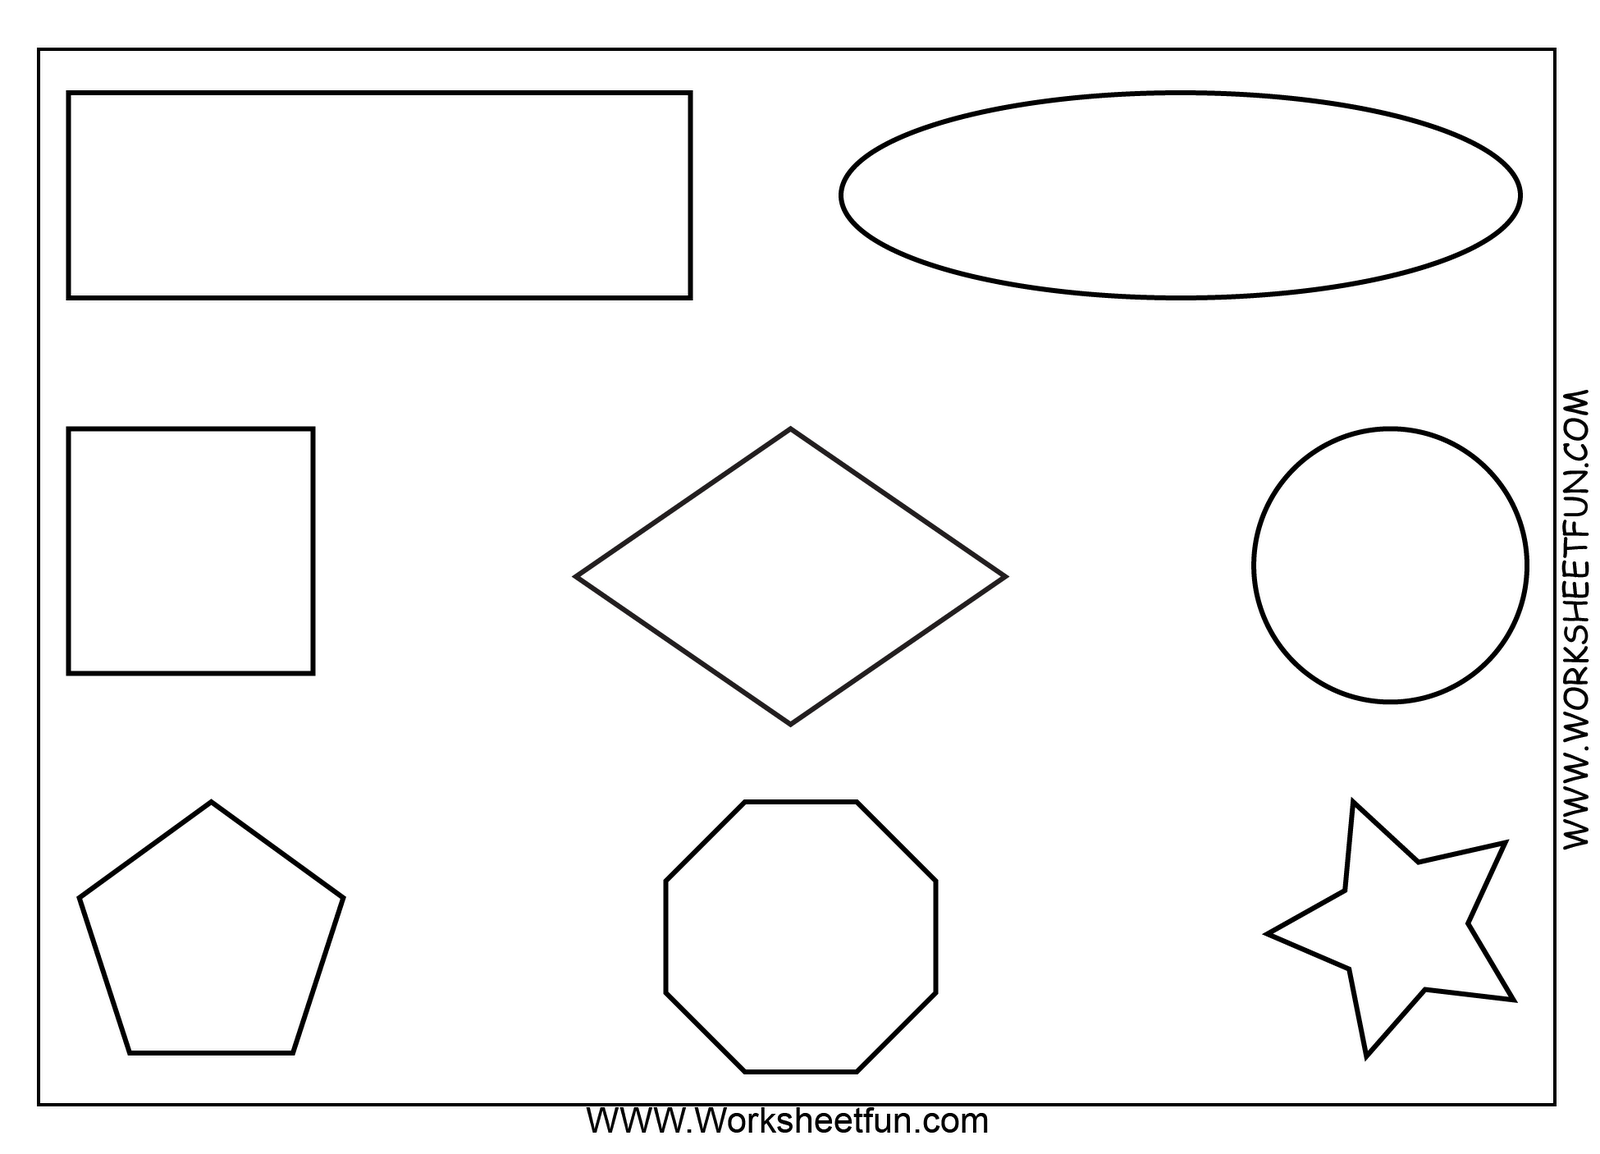 Uncategorized Maths Shapes Worksheets free printable math worksheets use as an oral direction exam ex color the